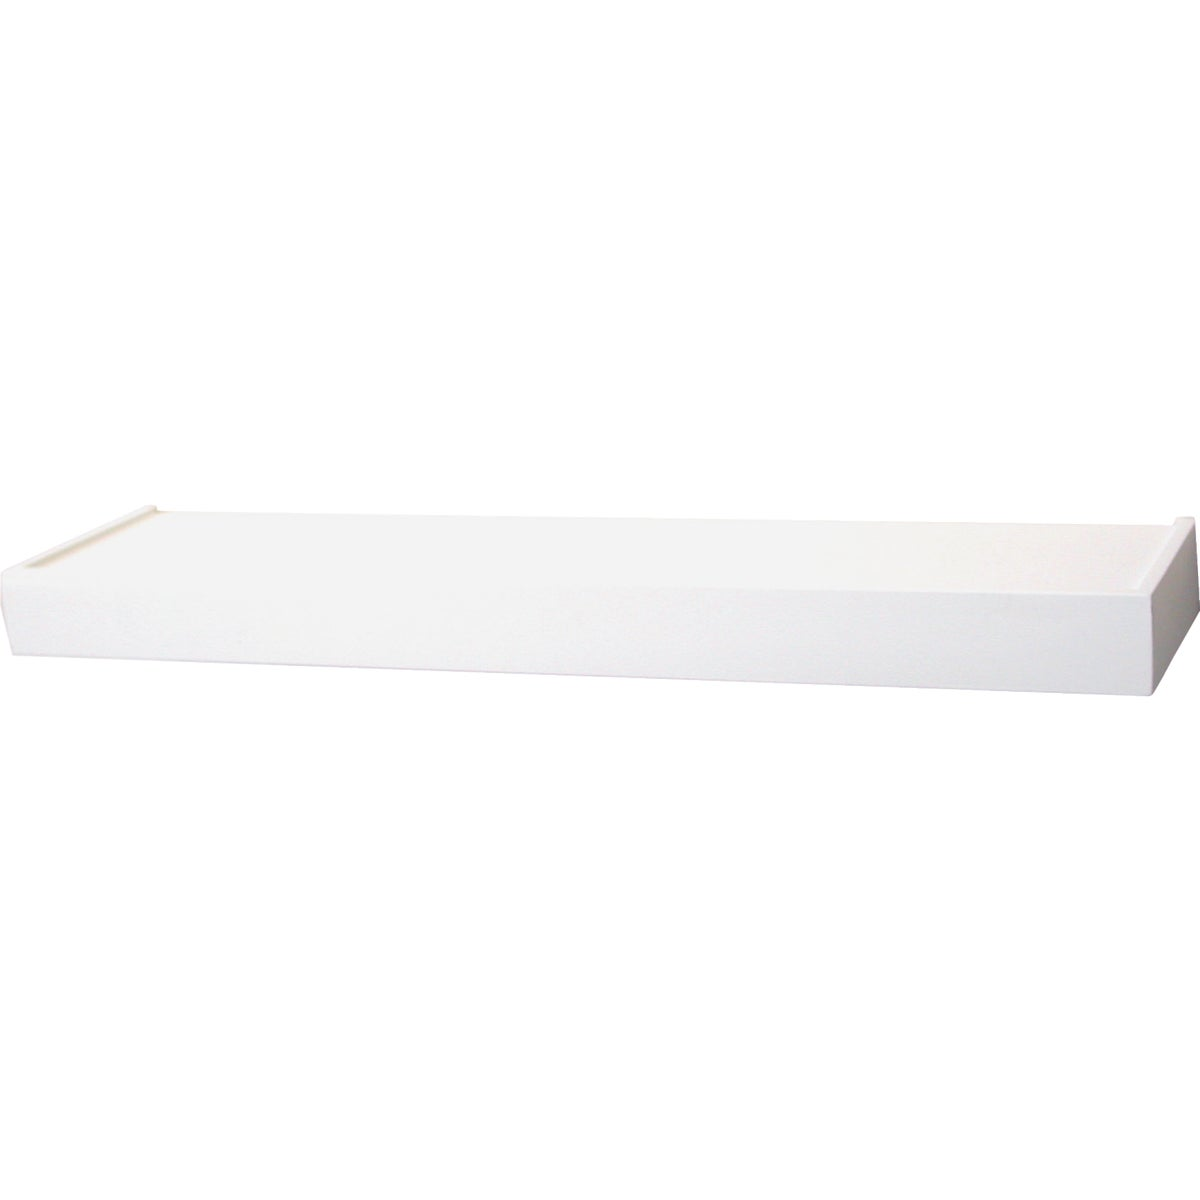 "36"" WHITE FLOATING SHELF - 0140-36WT by Knape & Vogt Mfg Co"